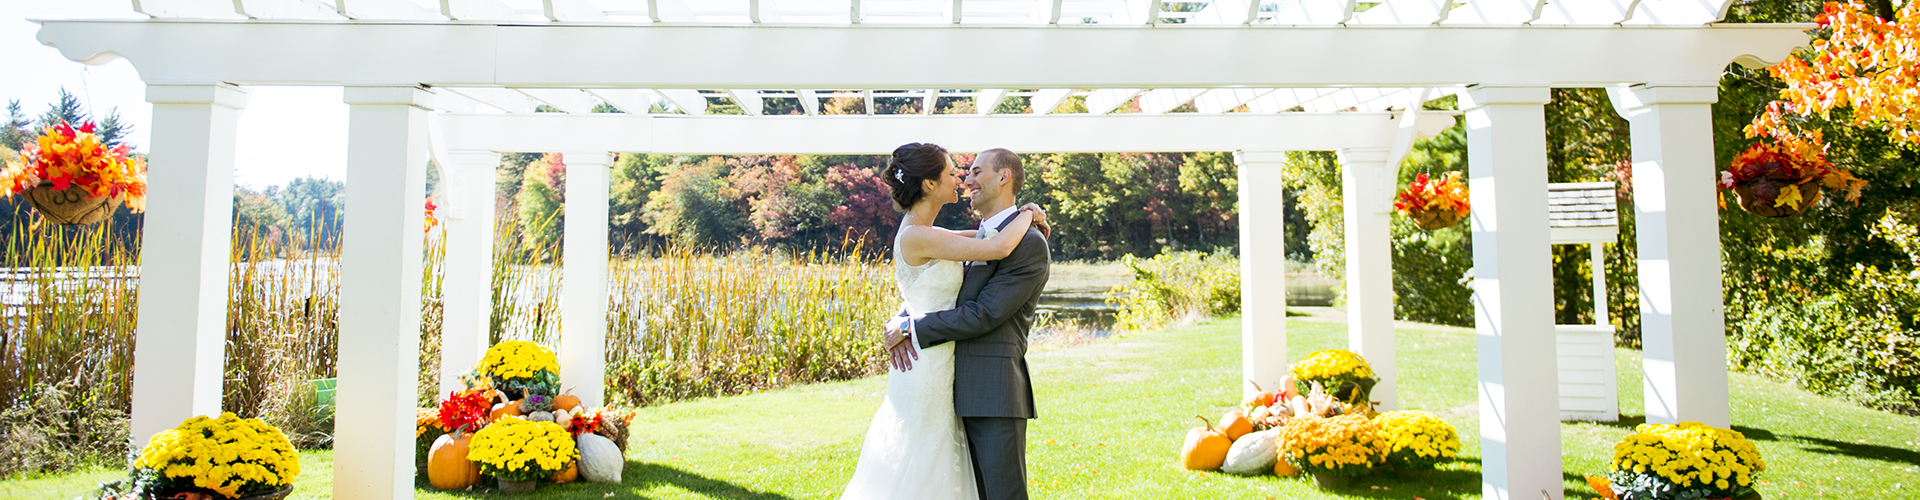 A newlywed couple embraces under a pergola at Butternut Farm